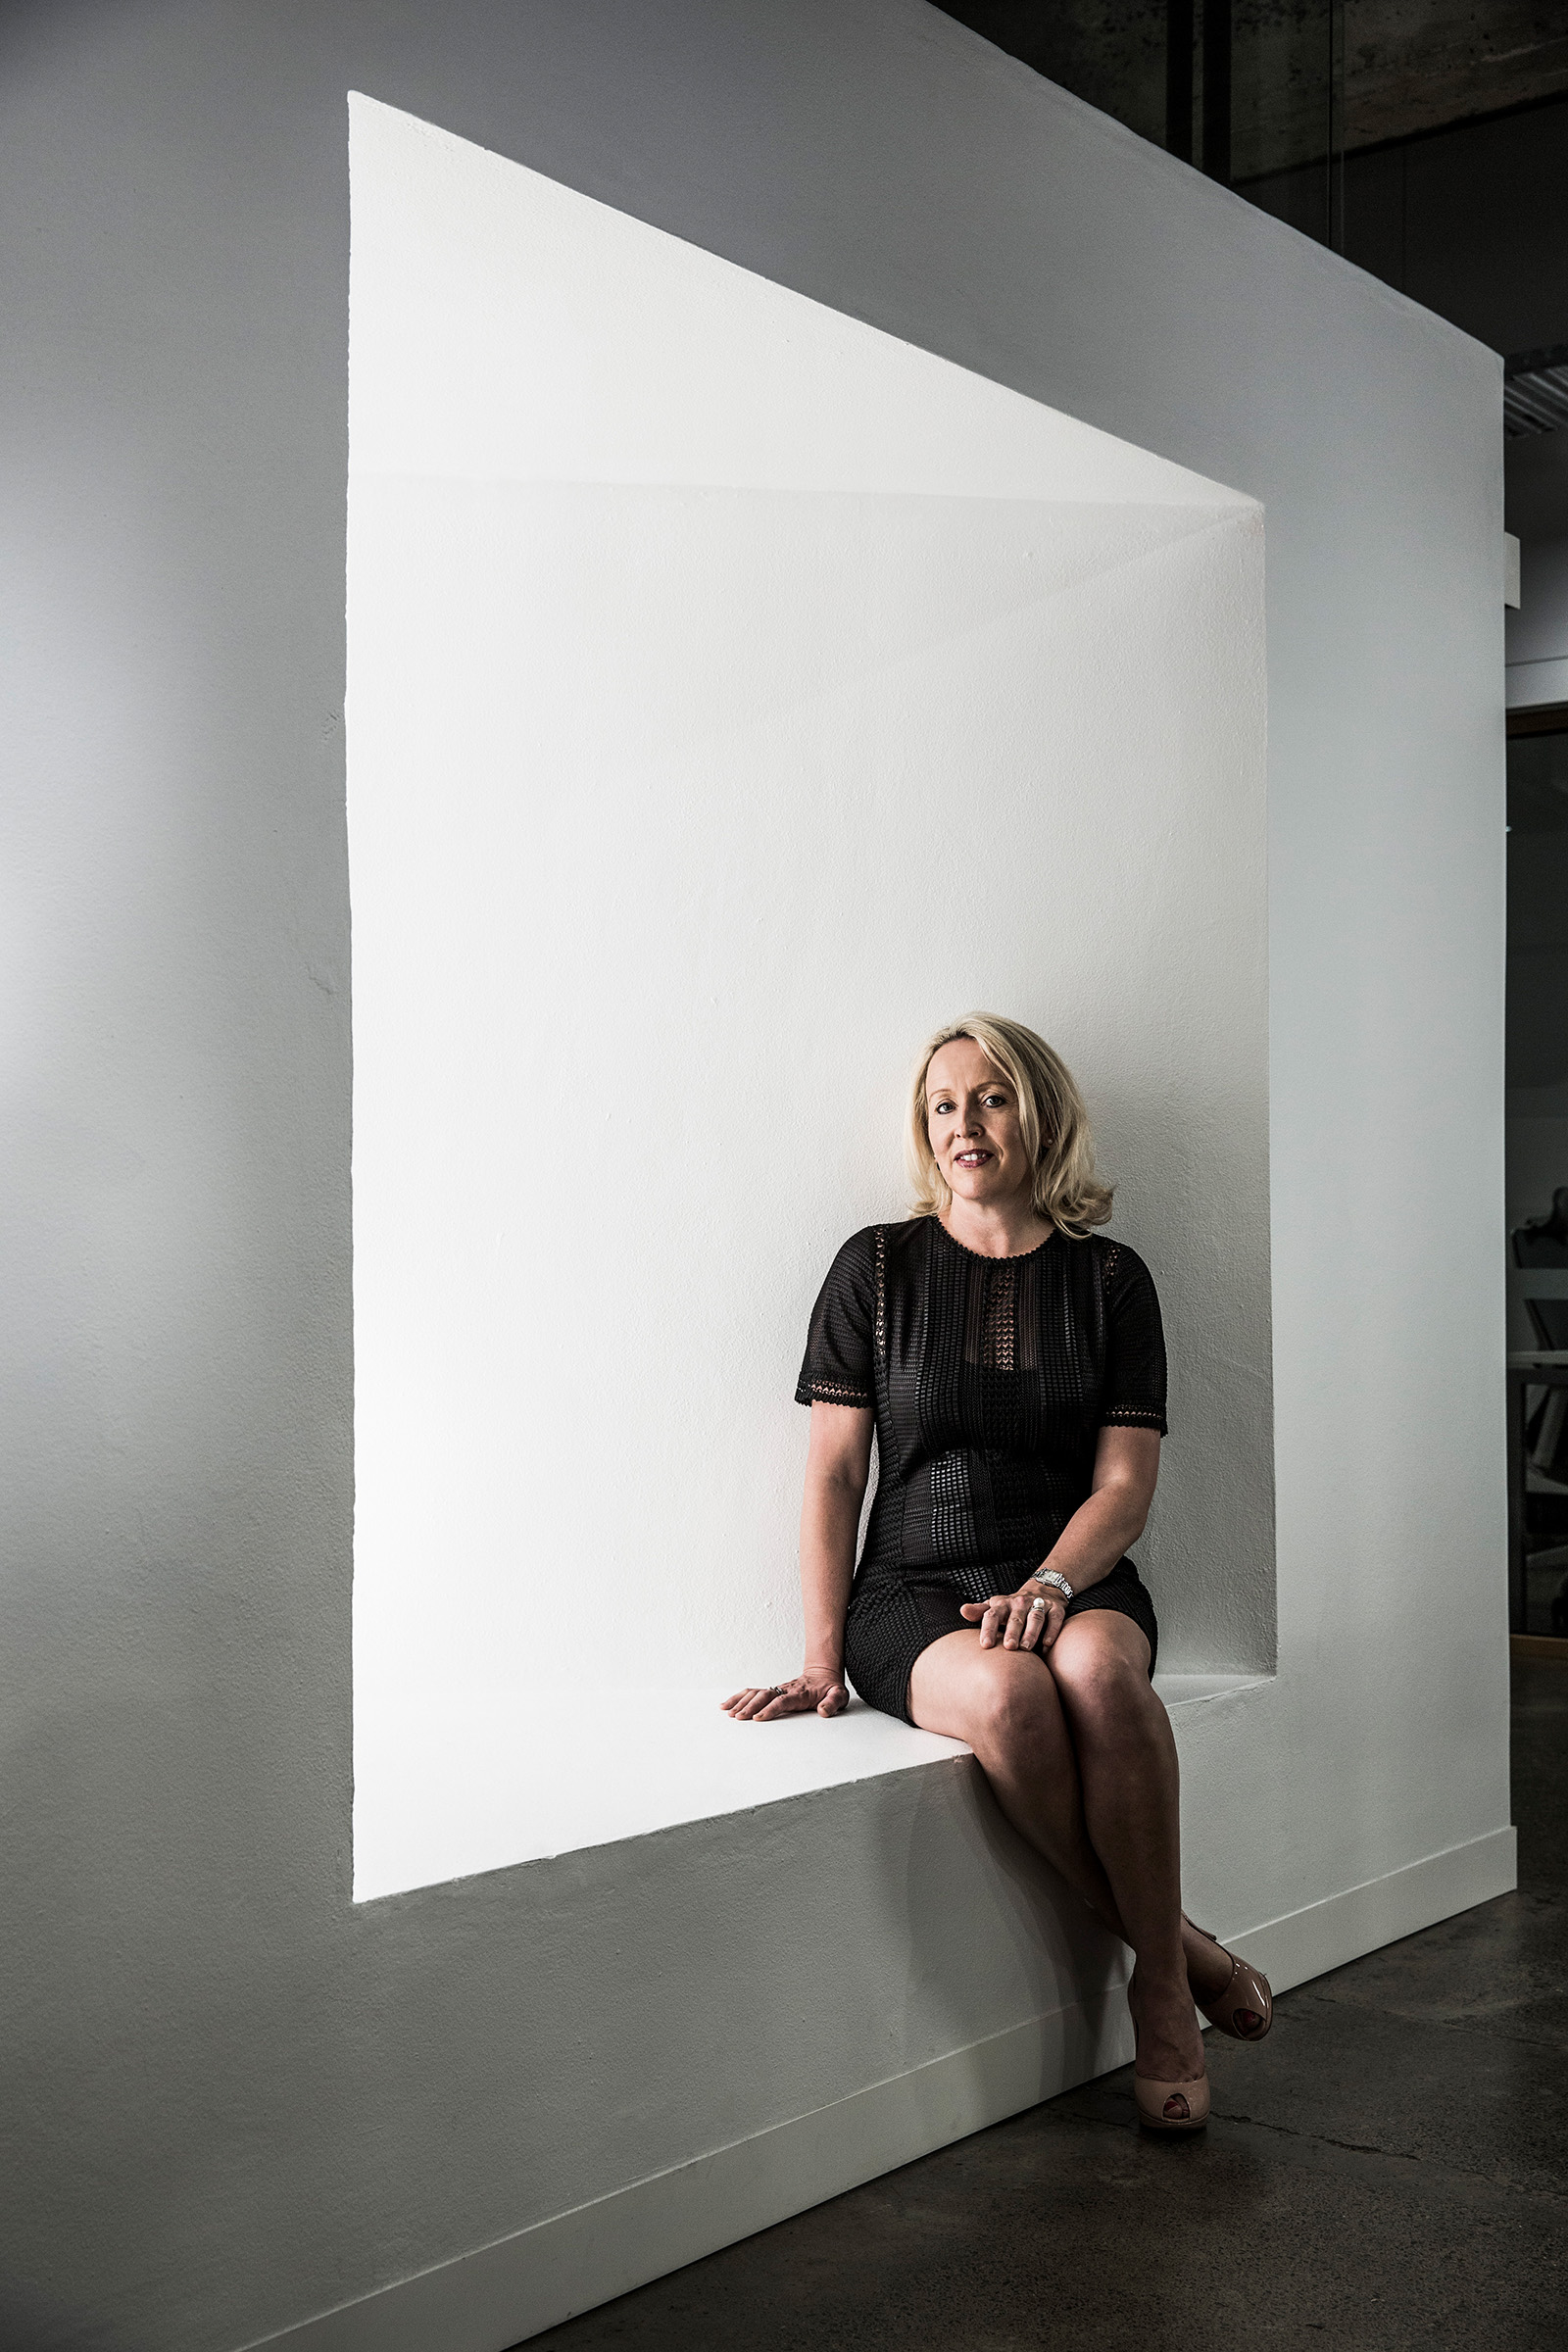 Editorial photography of Paula Kensington seated on a geometric square feature in industrial space looking at camera